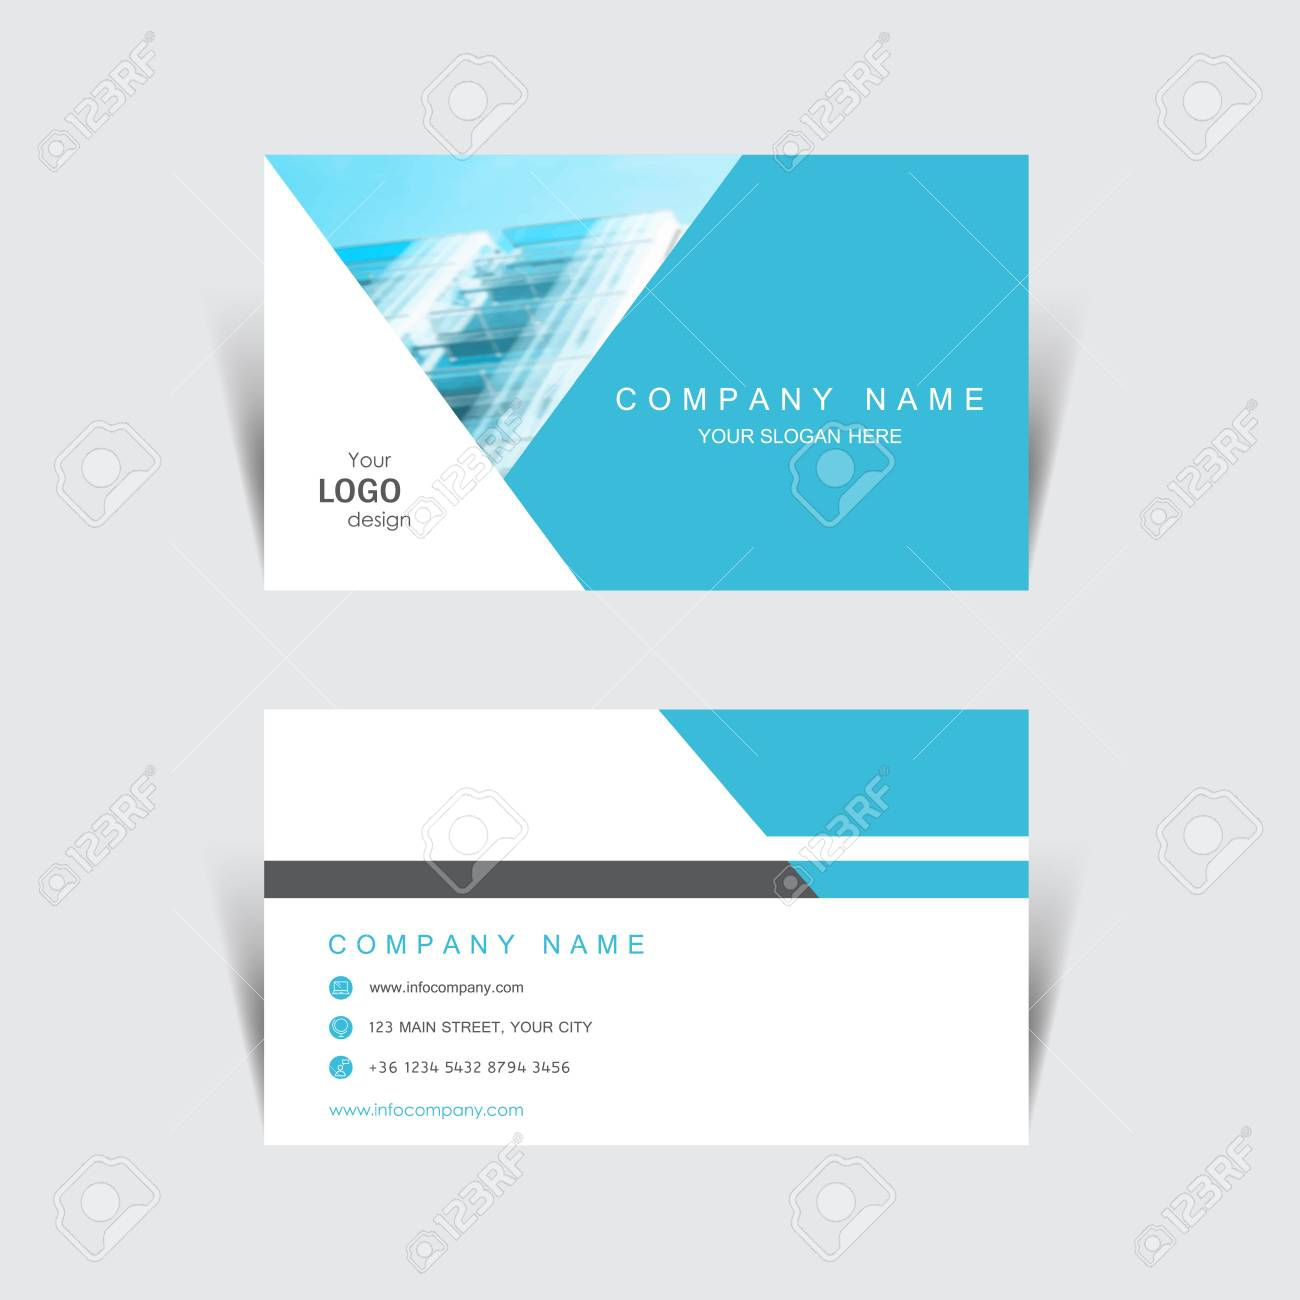 Business card print template design vector illustration stationery business card print template design vector illustration stationery business design visiting cards set design reheart Gallery